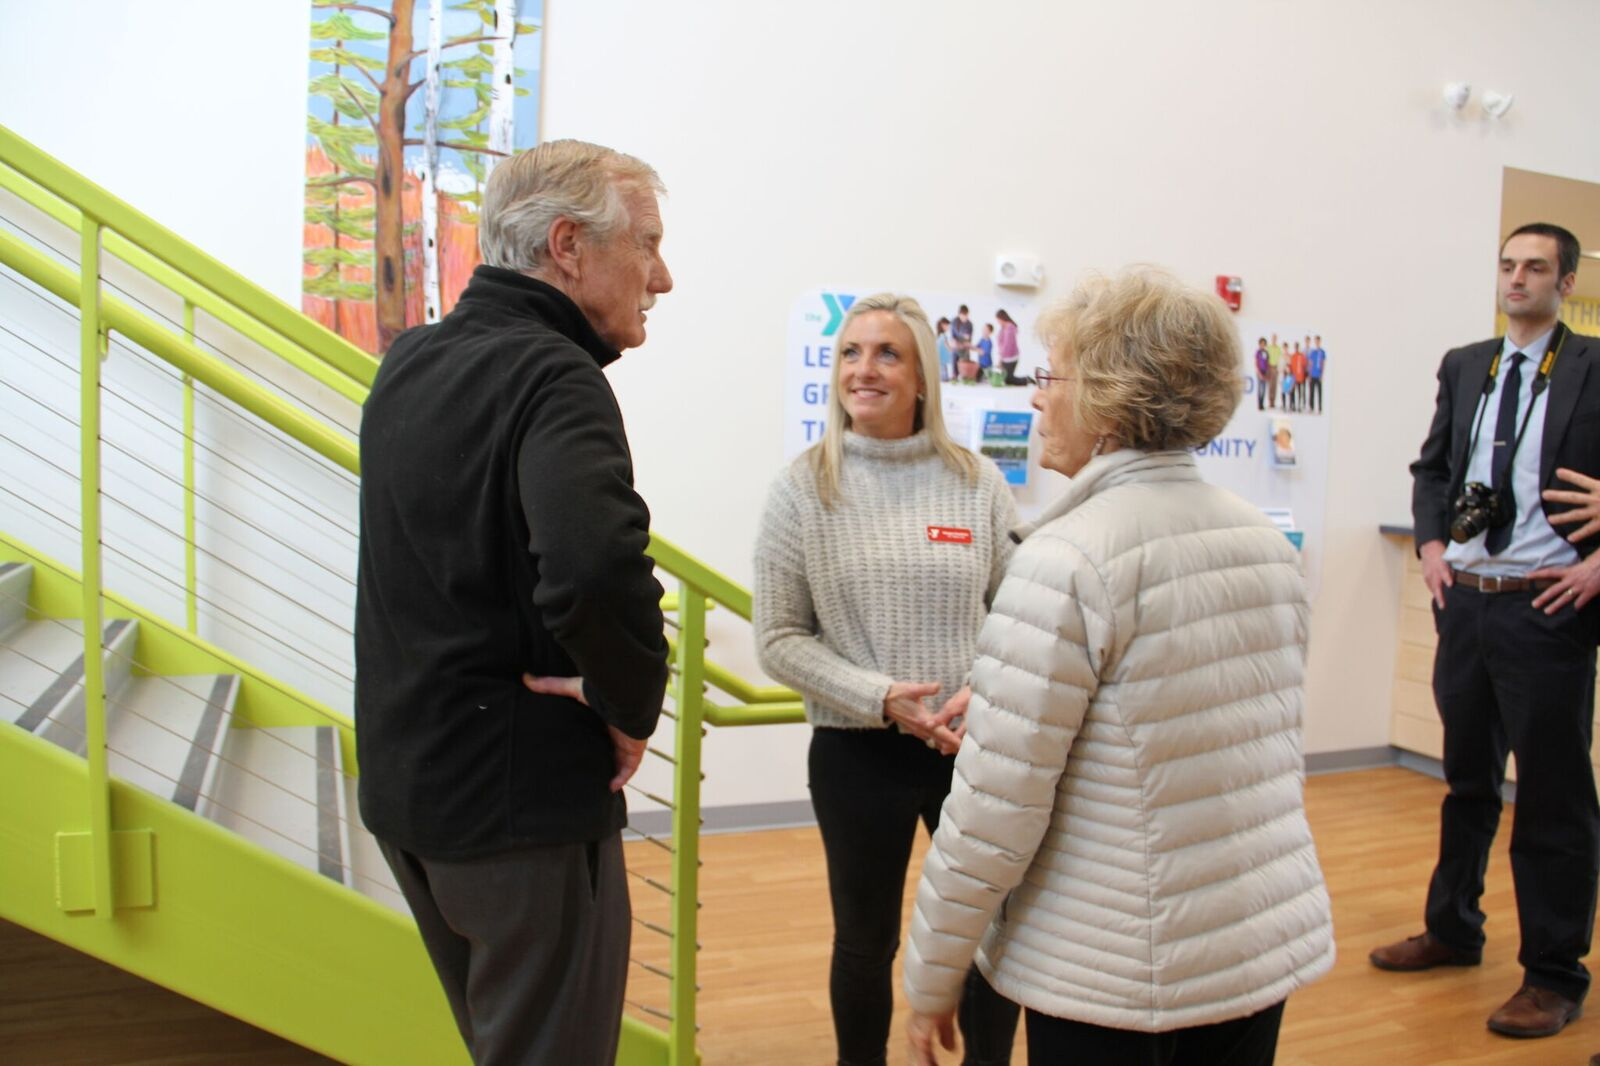 Senator Angus King of Maine, the YMCA's CEO Meagan Hamblett and a local artist.